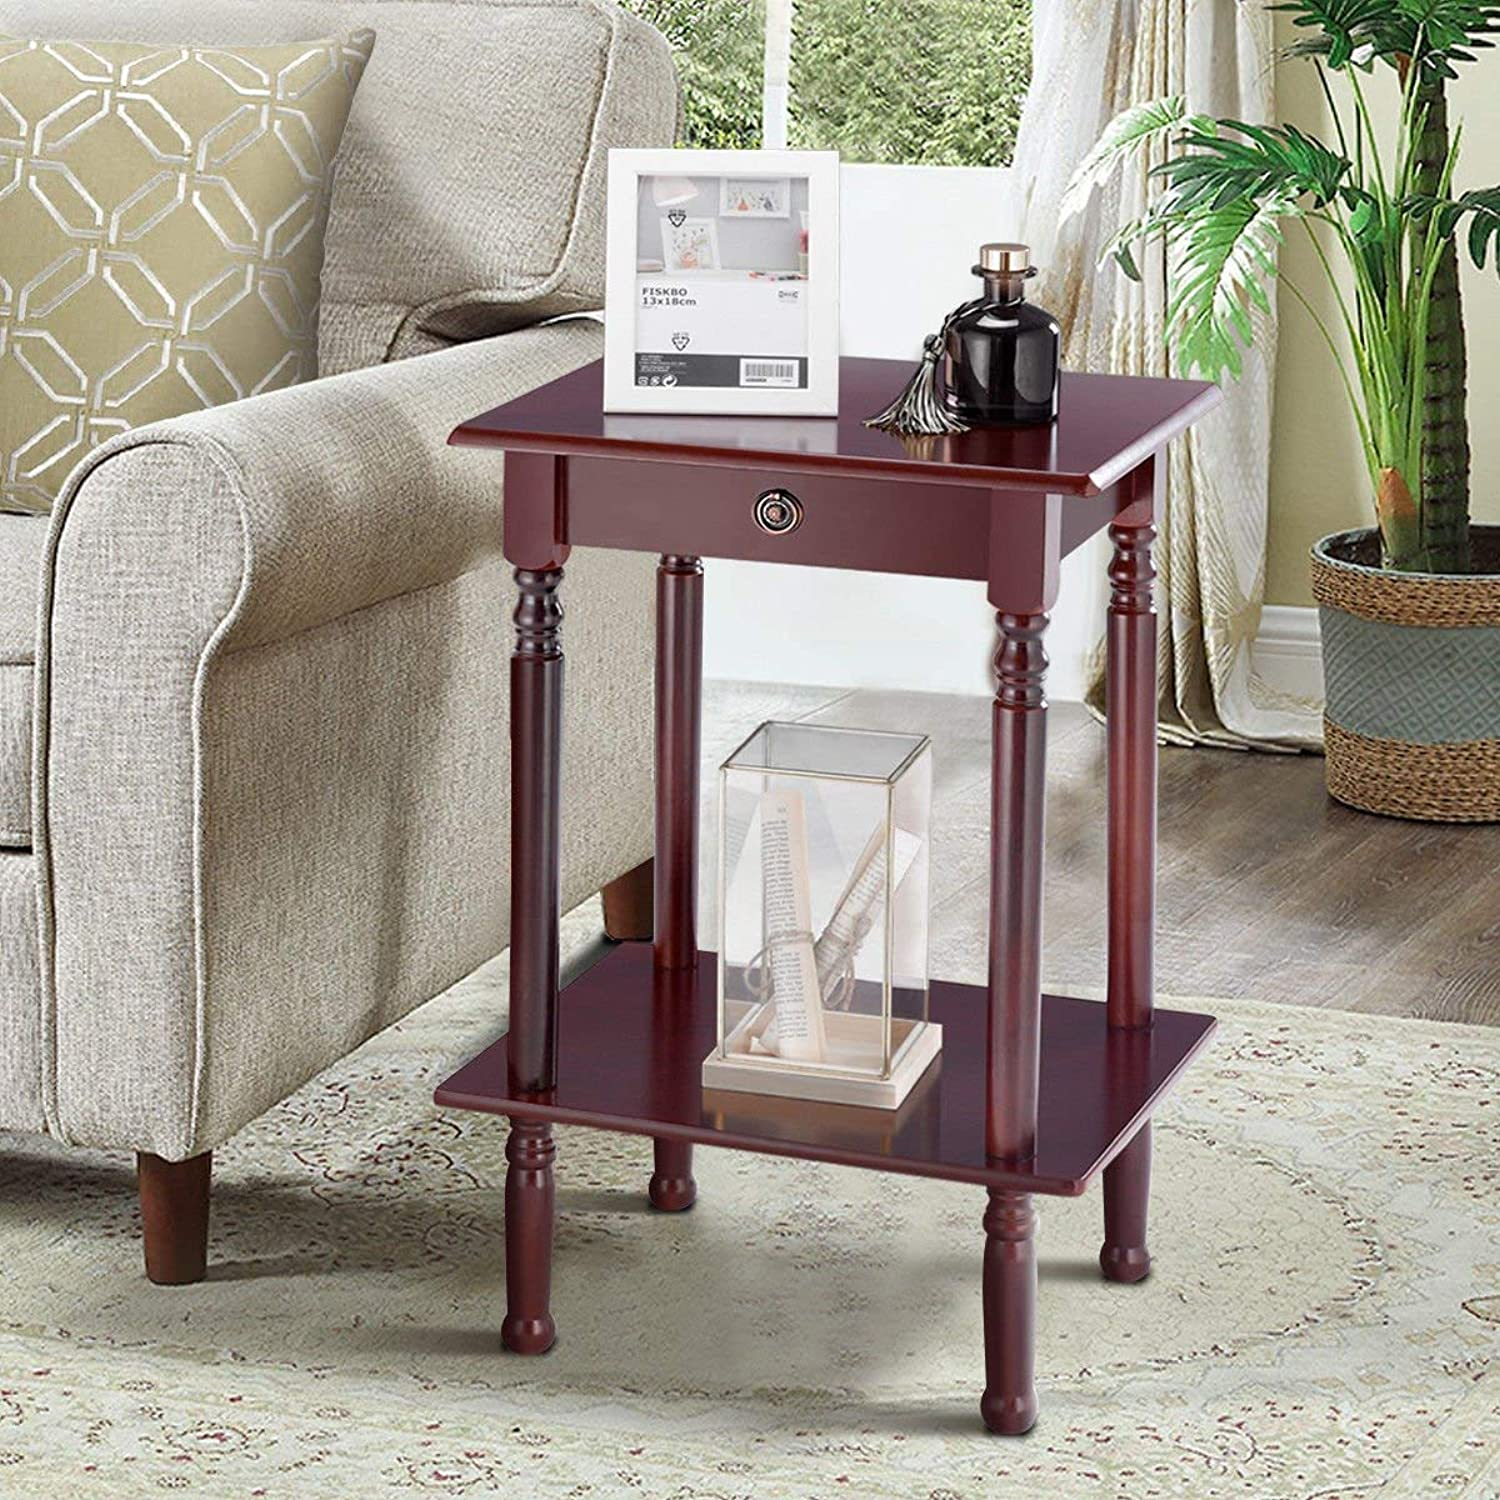 Tangkula End Table Tall Wood Side Table Accent Style Telephone Stand Table Home Office Furniture (Shelf)